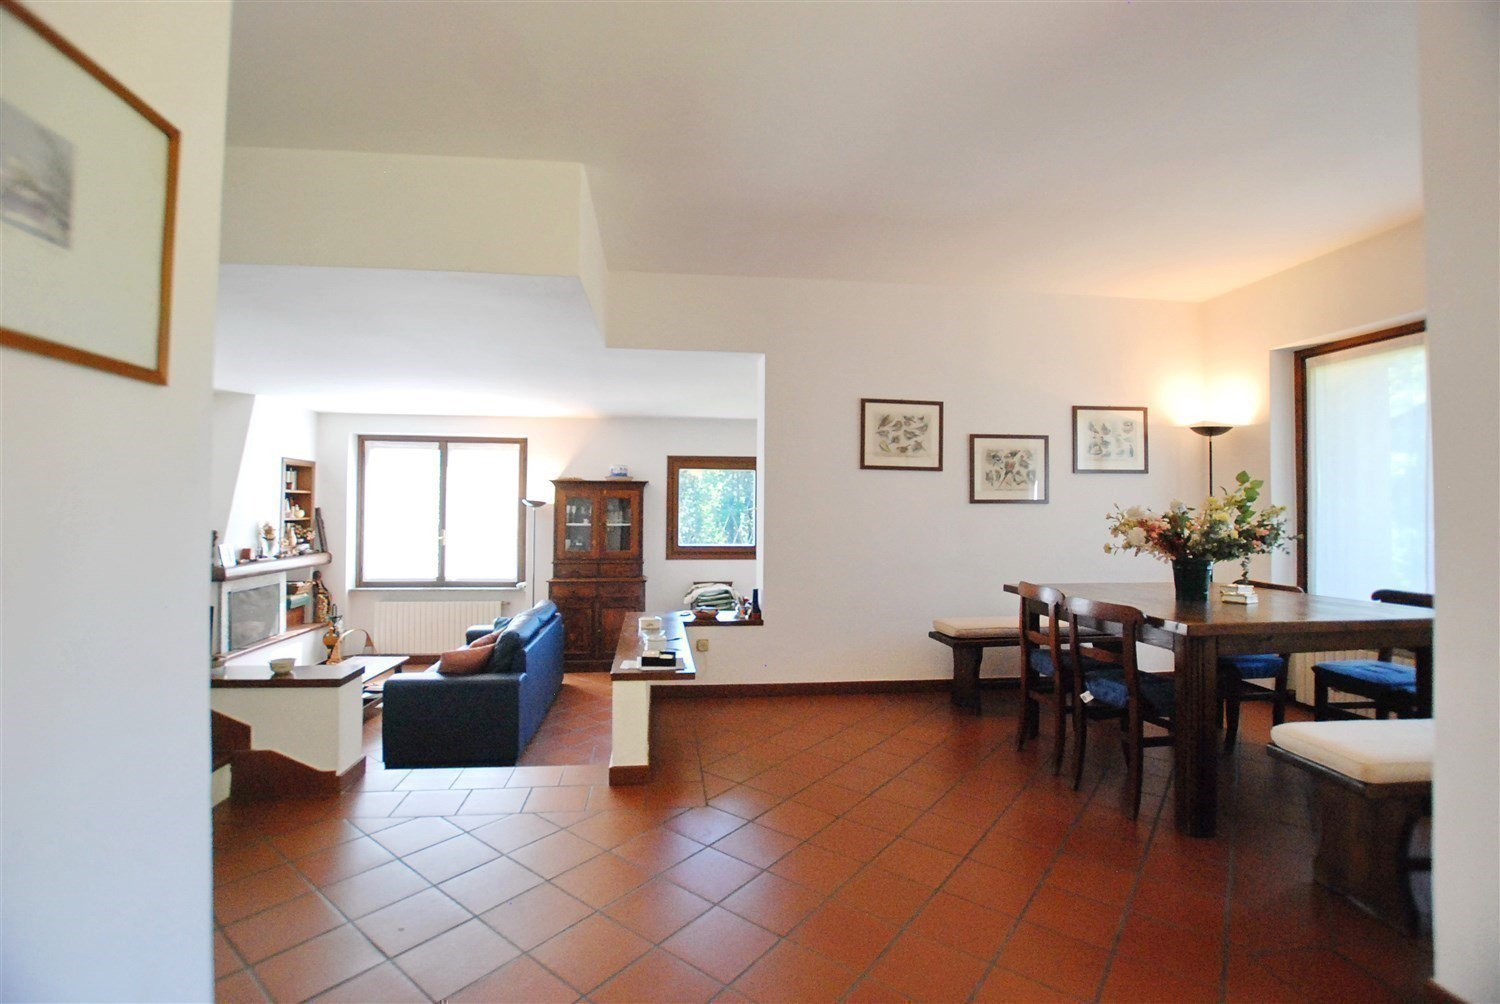 Terraced house for sale in Gignese, based in Vezzo - large living area